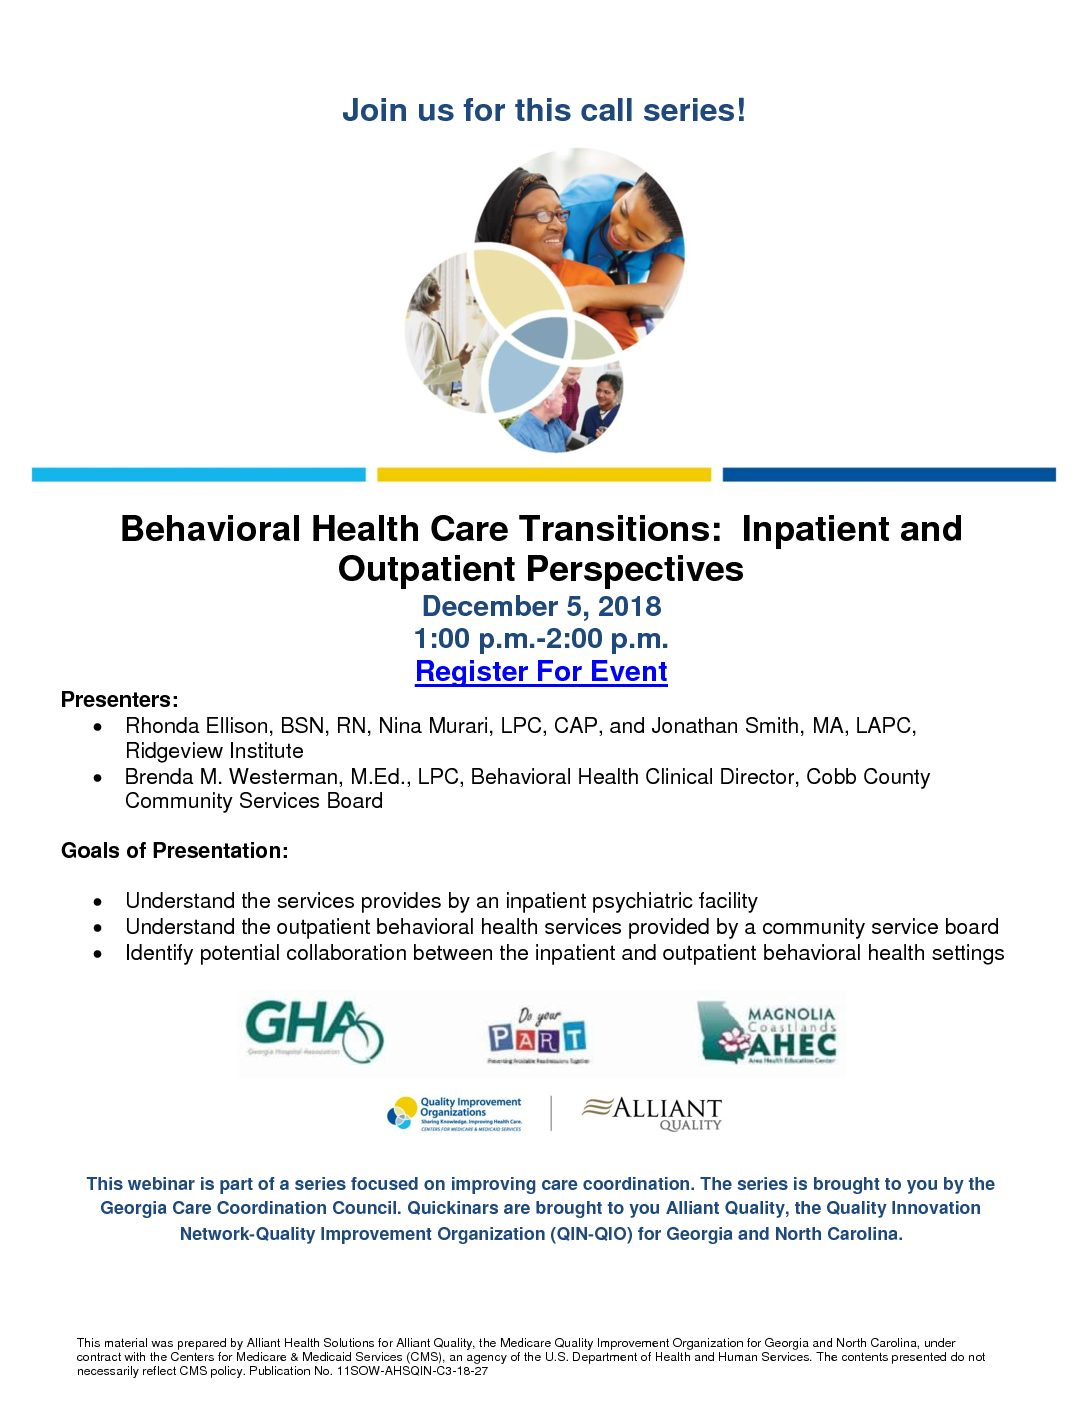 Behavioral Health Care Transitions